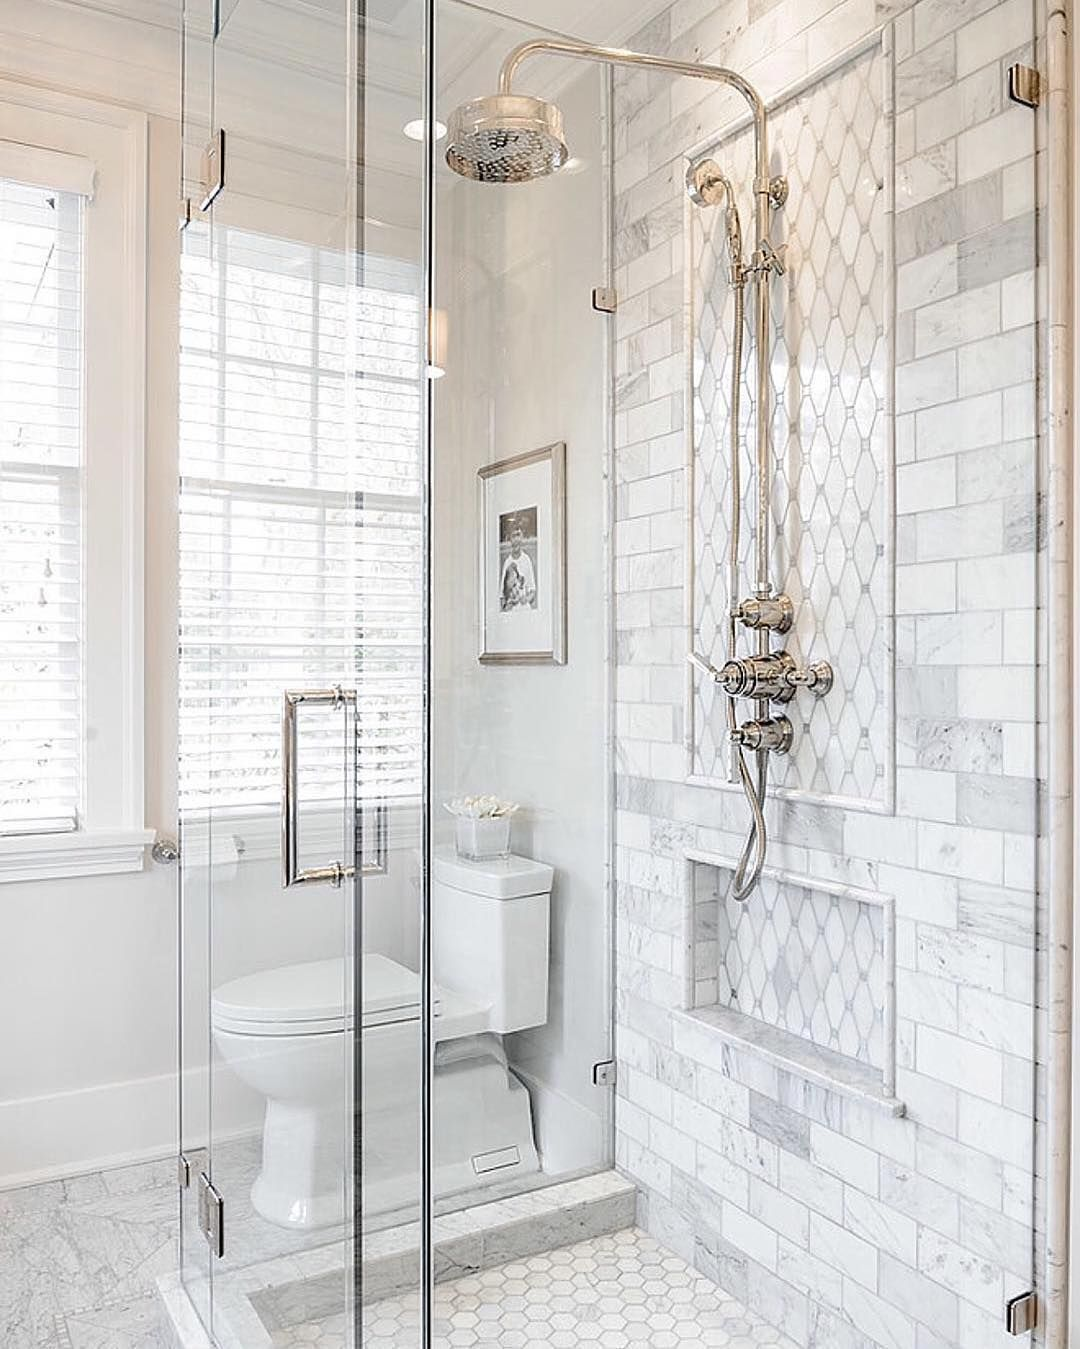 Delicieux Weu0027re Feeling Inspired By This Beautiful Bathroom From  @the_real_houses_of_ig! Get The Look With Our Reflection Diamond Tile  Carrara Marble Subway Tile And ...